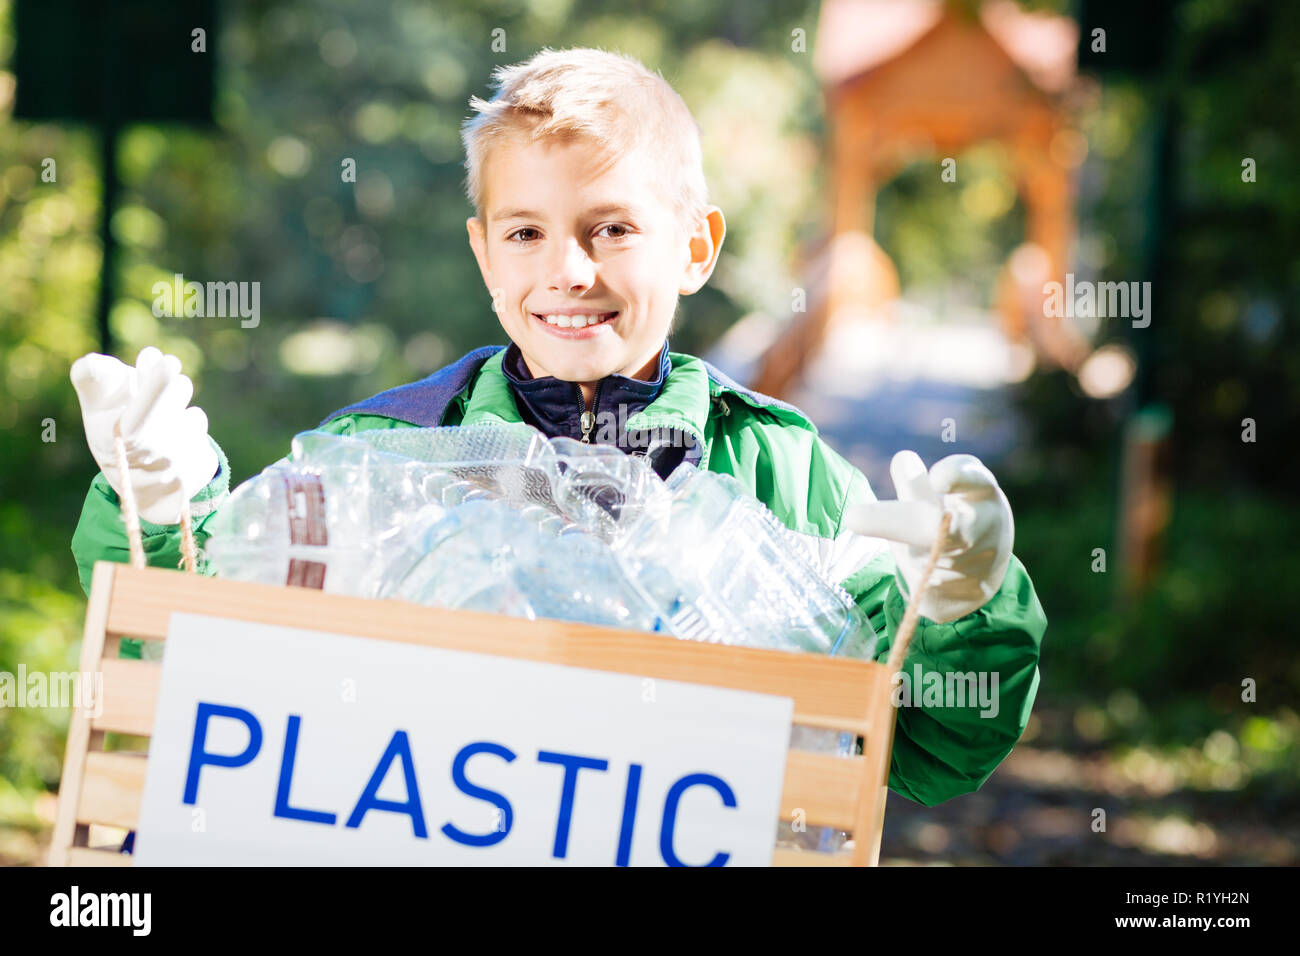 Cheerful blonde boy holding a box with bottles - Stock Image